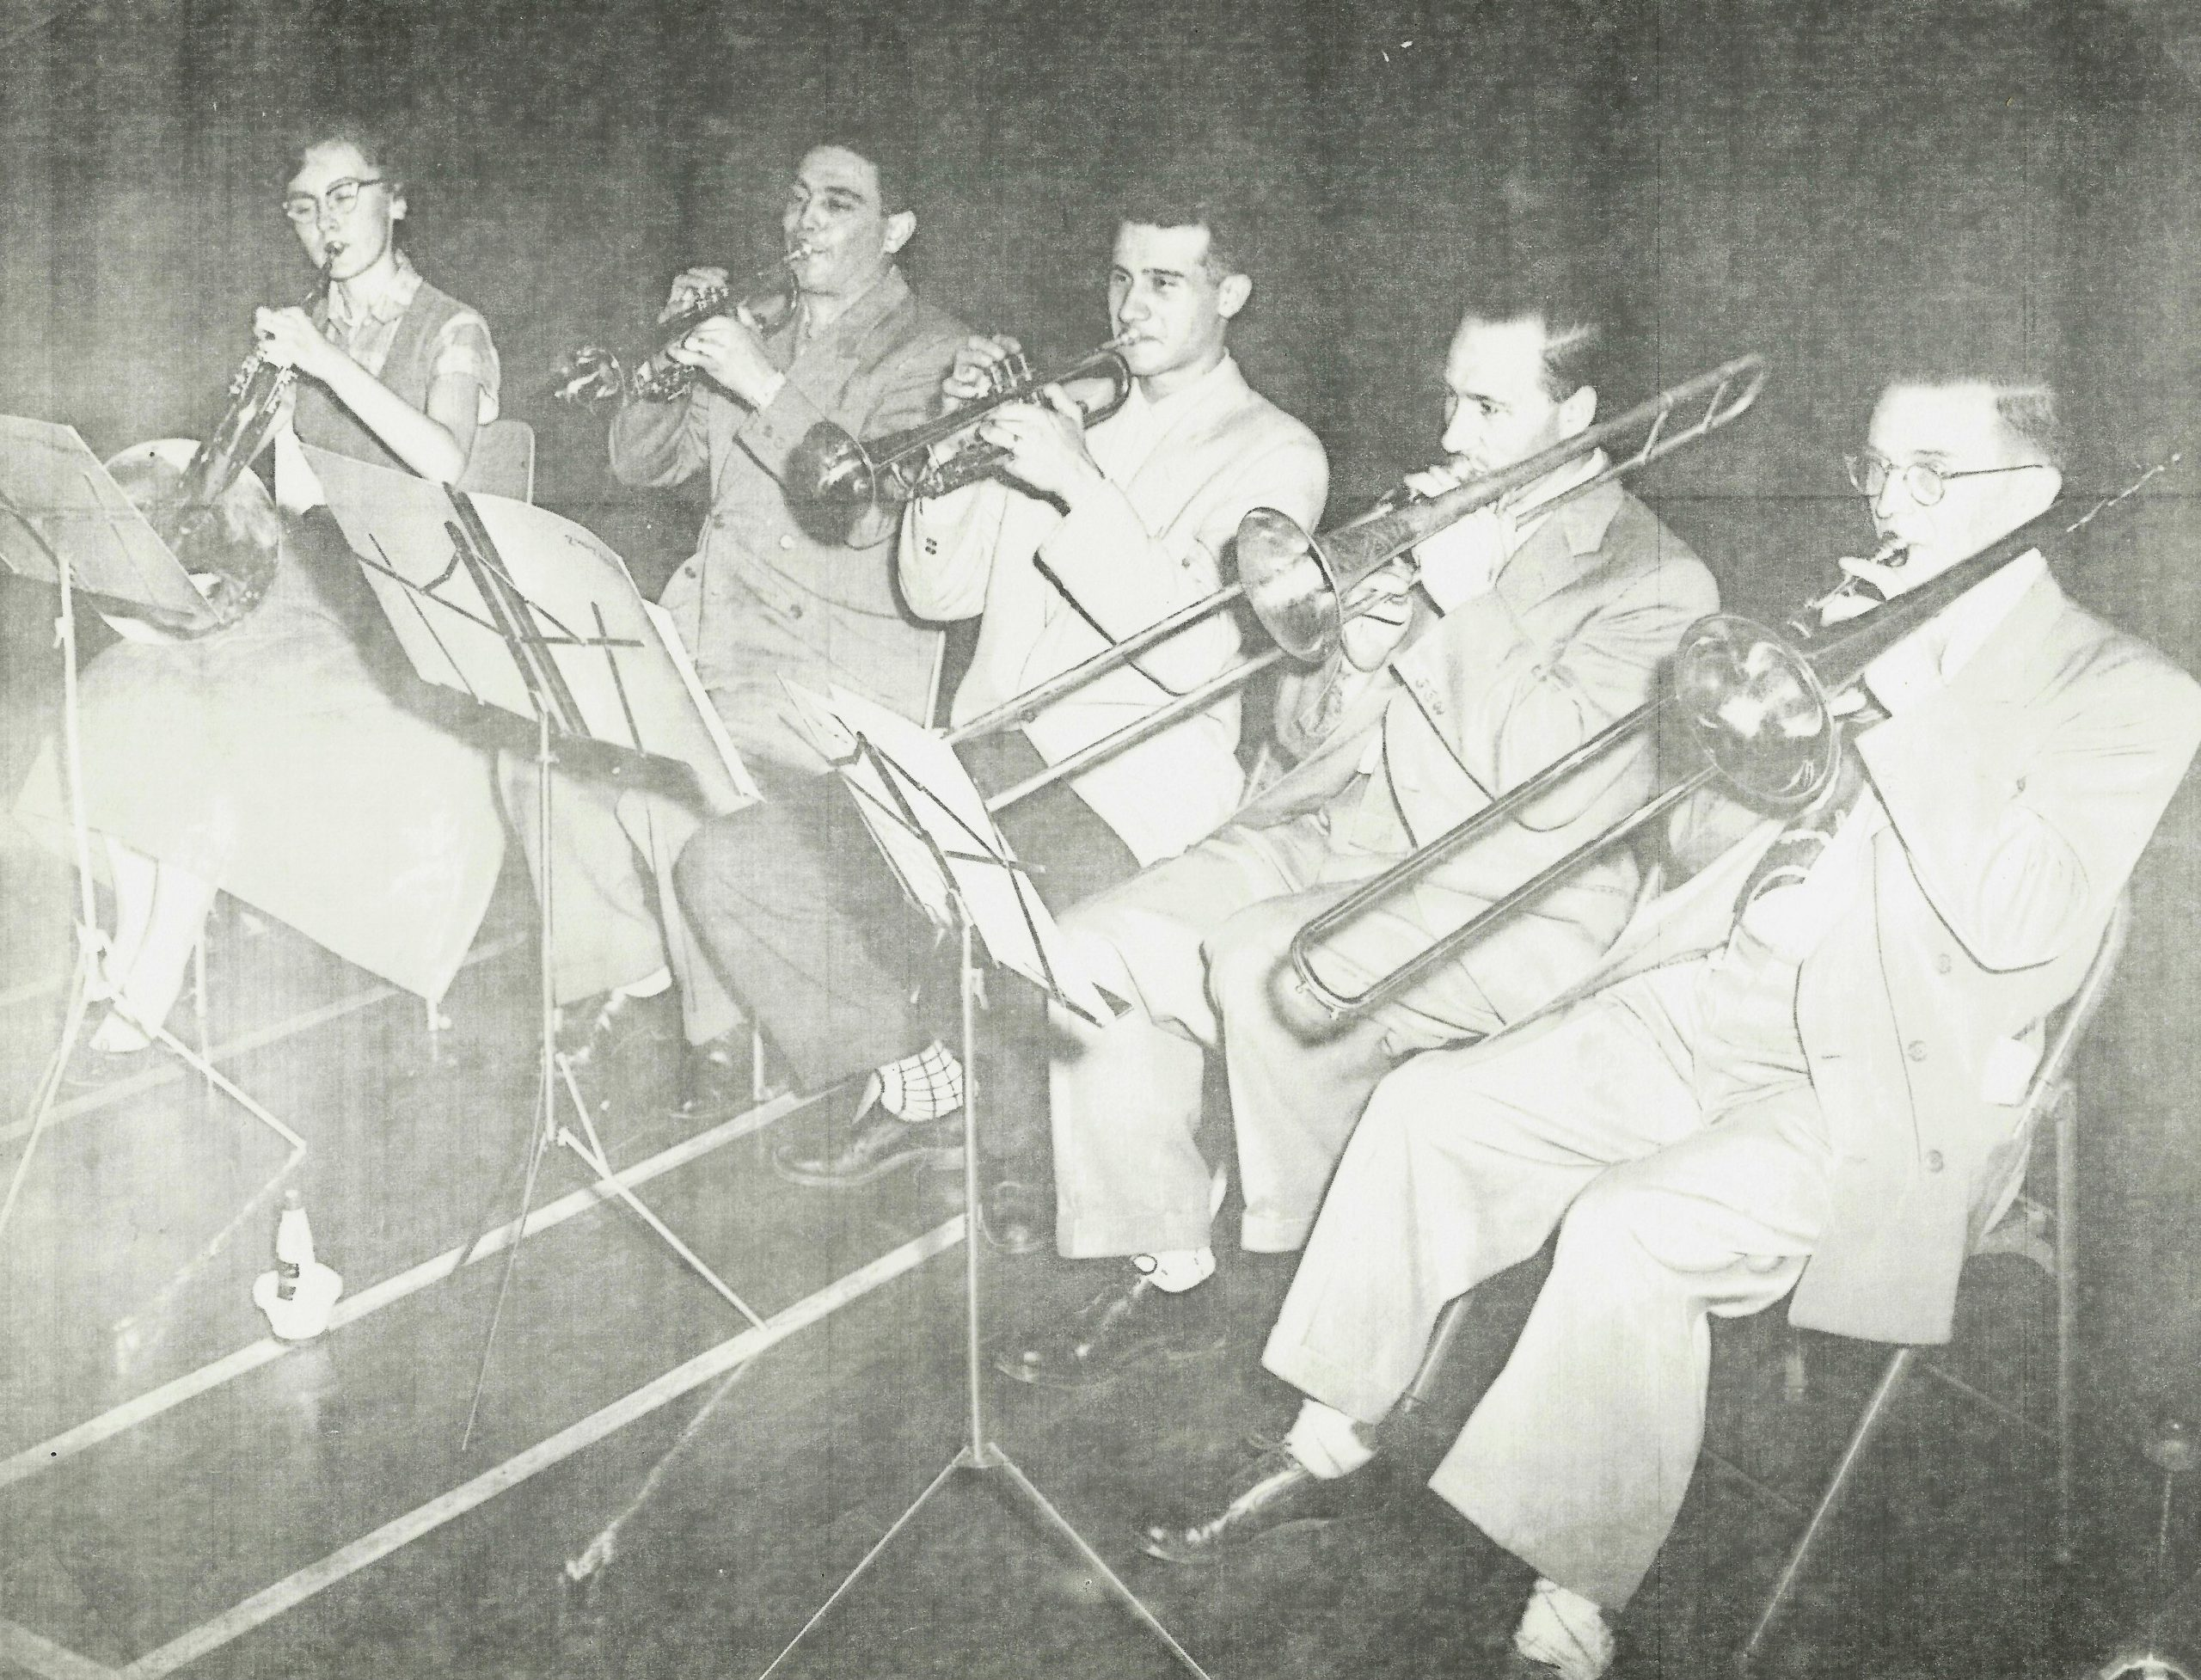 Brass Section - 1947